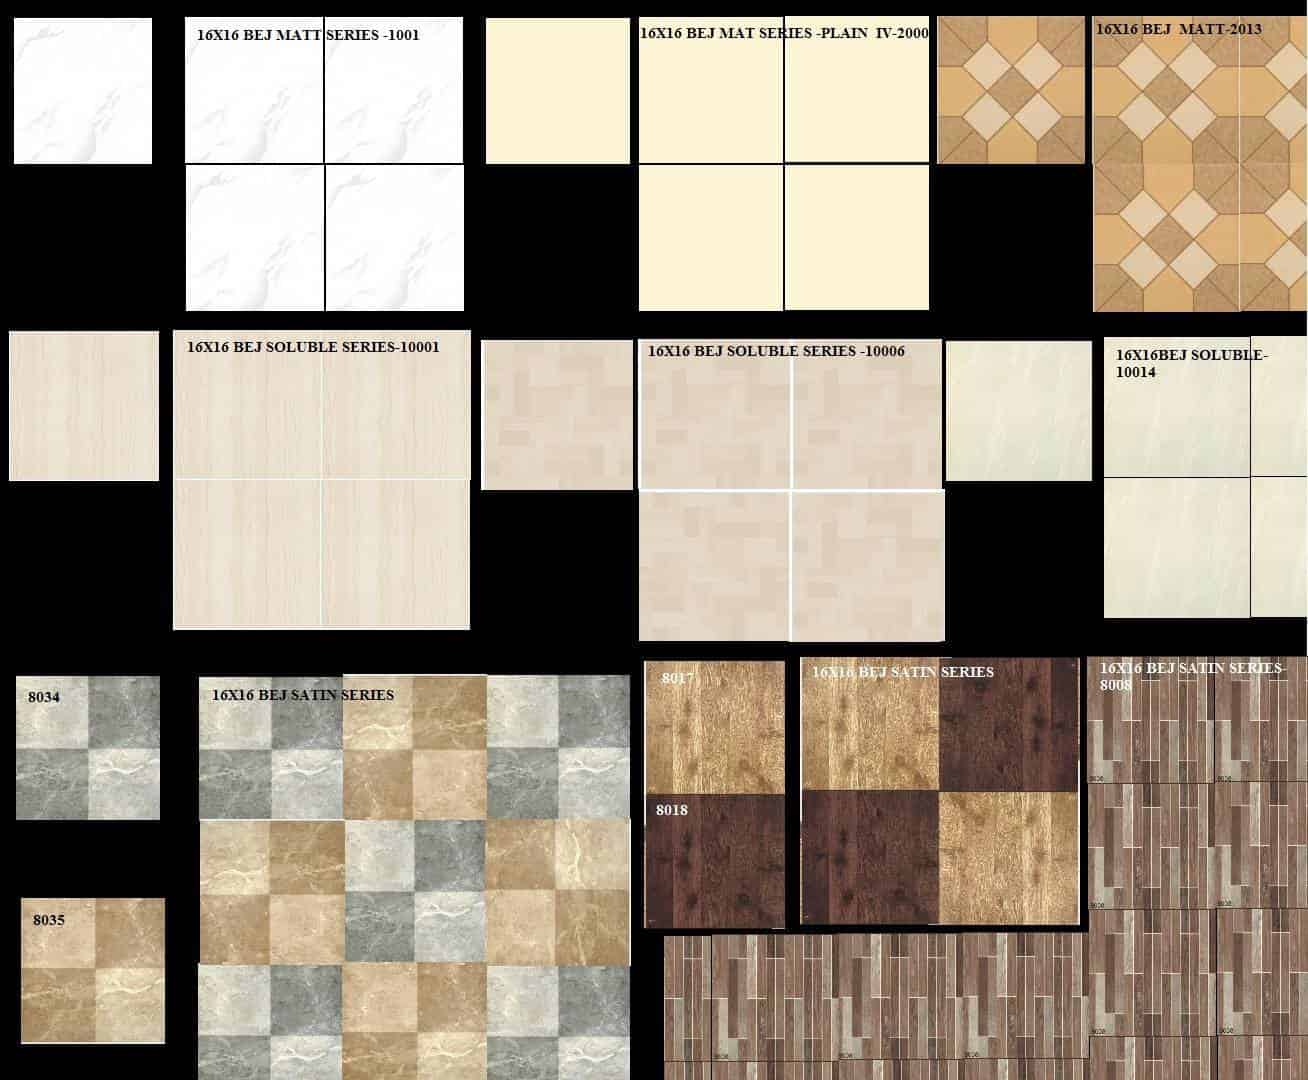 Apple ceramics photos banjara hills hyderabad pictures images tiles view apple ceramics photos banjara hills hyderabad ceramic tile distributors dailygadgetfo Images